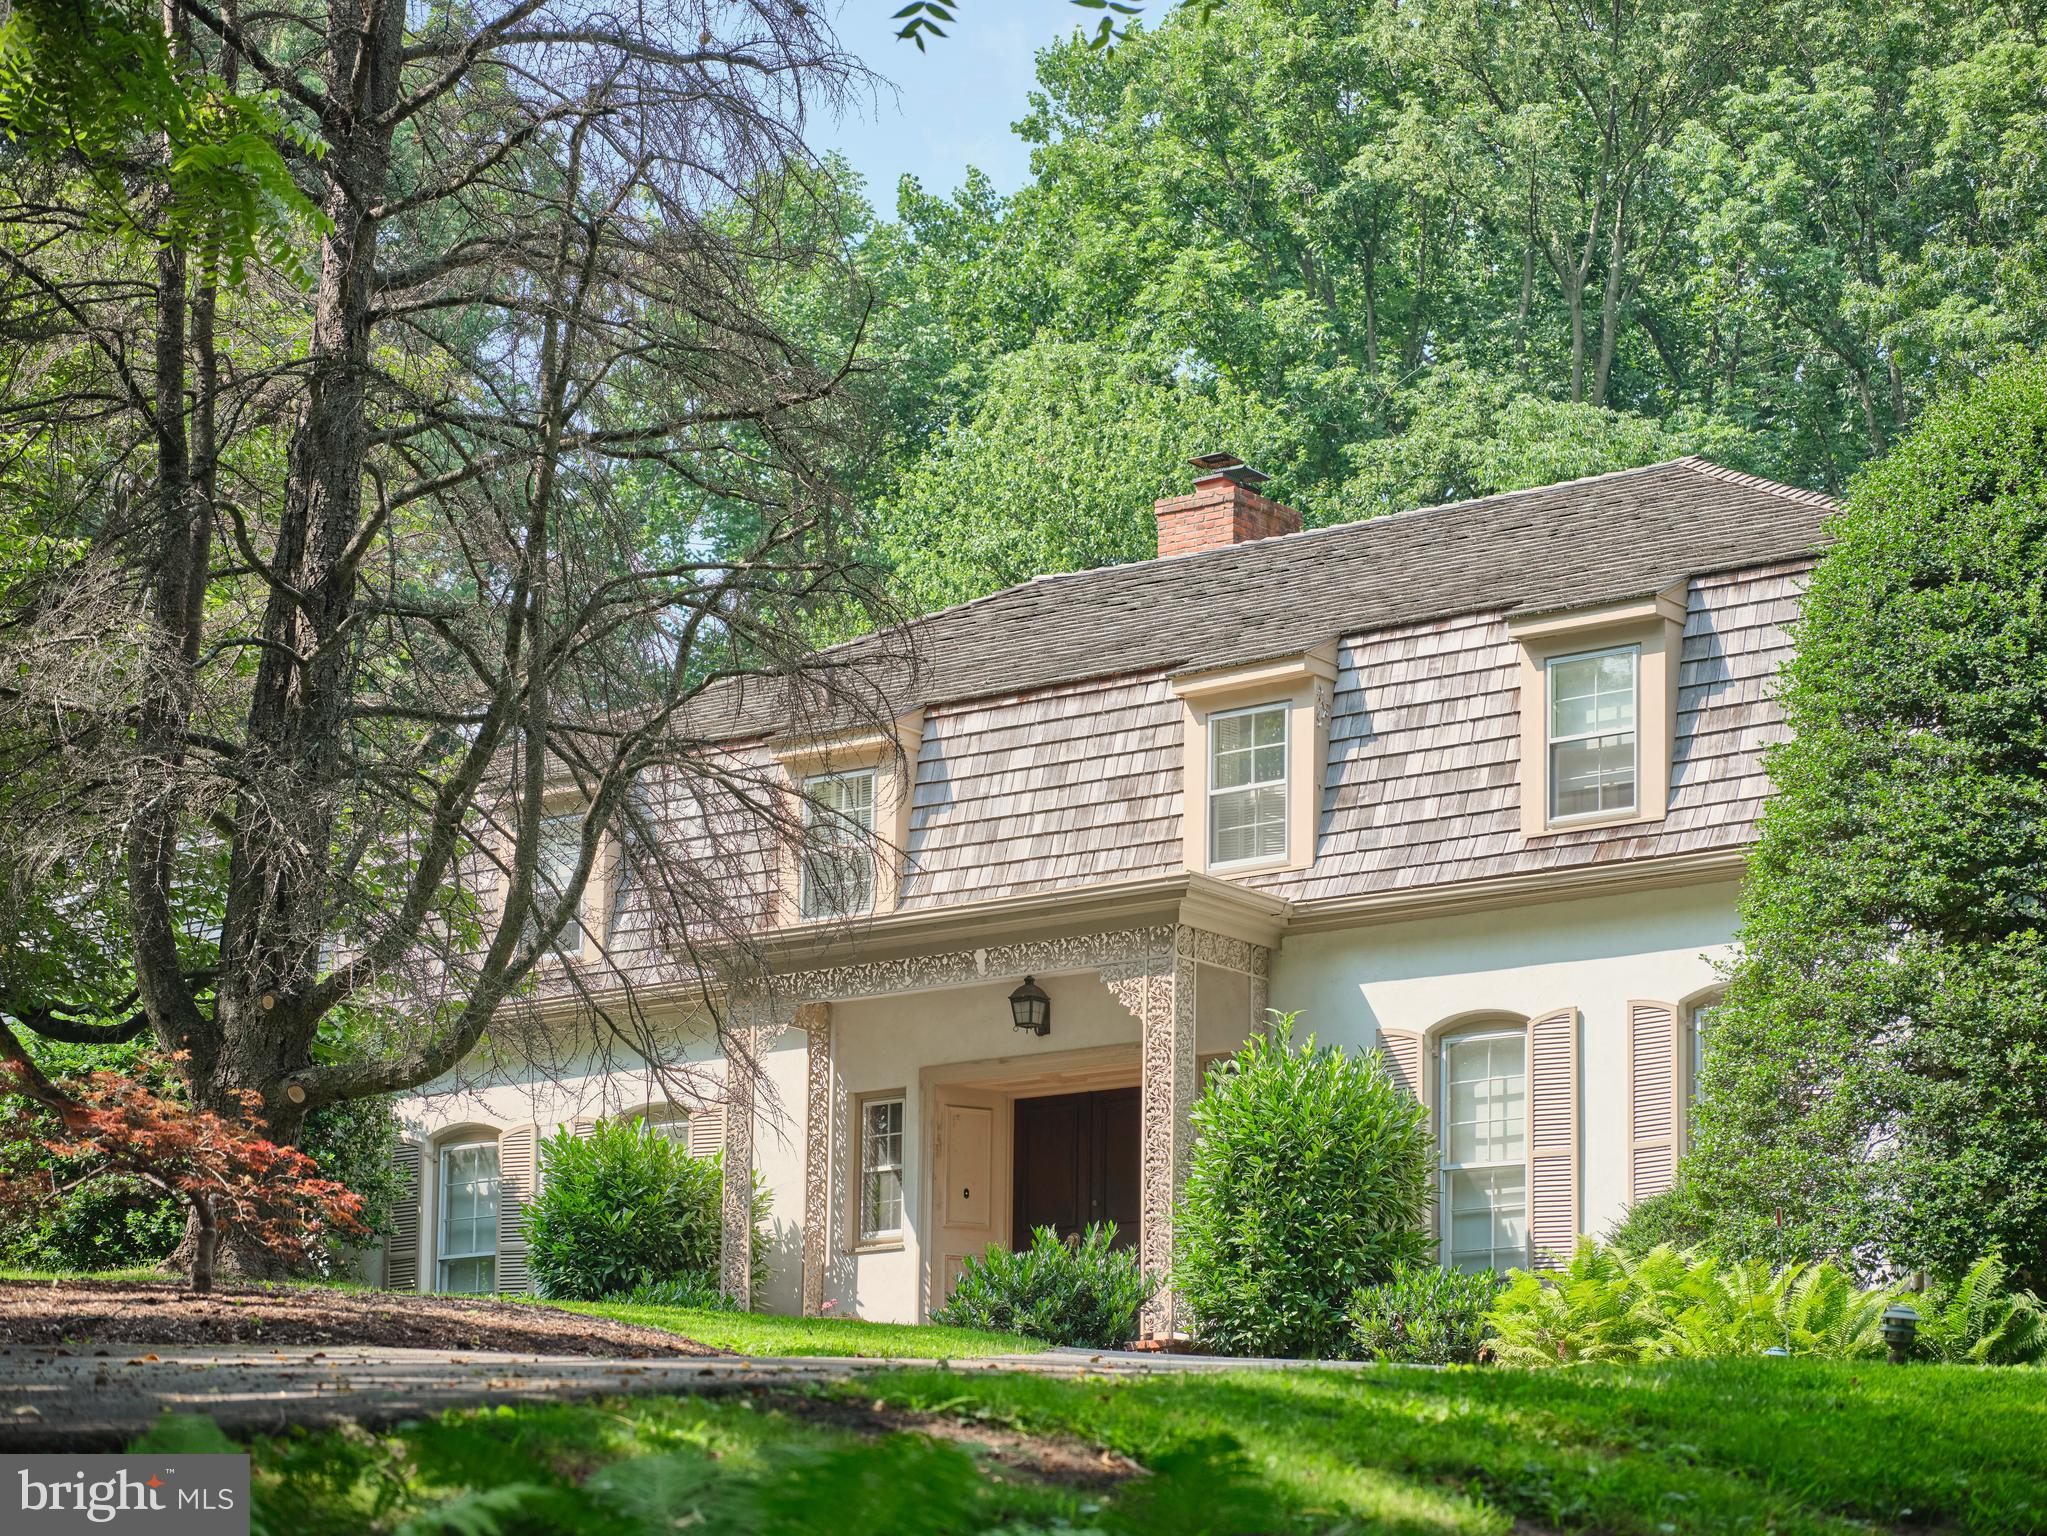 Ideally located on a park-like 3.47-acre parcel at the end of a private lane in Lower Merion's North-side Villanova find this classically styled 4-bedroom 4.2 bath home. Set on a slight rise to capture the sun and long views in all directions, the home, built in 1968 offers a timeless floor plan with formal Dining and Living spaces and an eastern facing Kitchen that flows into the fireside Family Room. A deep terrace off the rear of the home connects the informal spaces to the pool, backyard, and entertaining areas. From the entrance foyer a sweeping stair leads to an elegant Primary Bedroom suite with three exposures of light, generous his and her closet space and wood burning fireplace. Three additional spacious bedrooms and 3 baths, two en suite, one  with custom shelving ,make use of either the front or rear stair. A  hand split cedar shingle roof was the most recent update to this beautifully constructed and designed, well-loved single owner home. Please note that some of the photos are virtually staged.